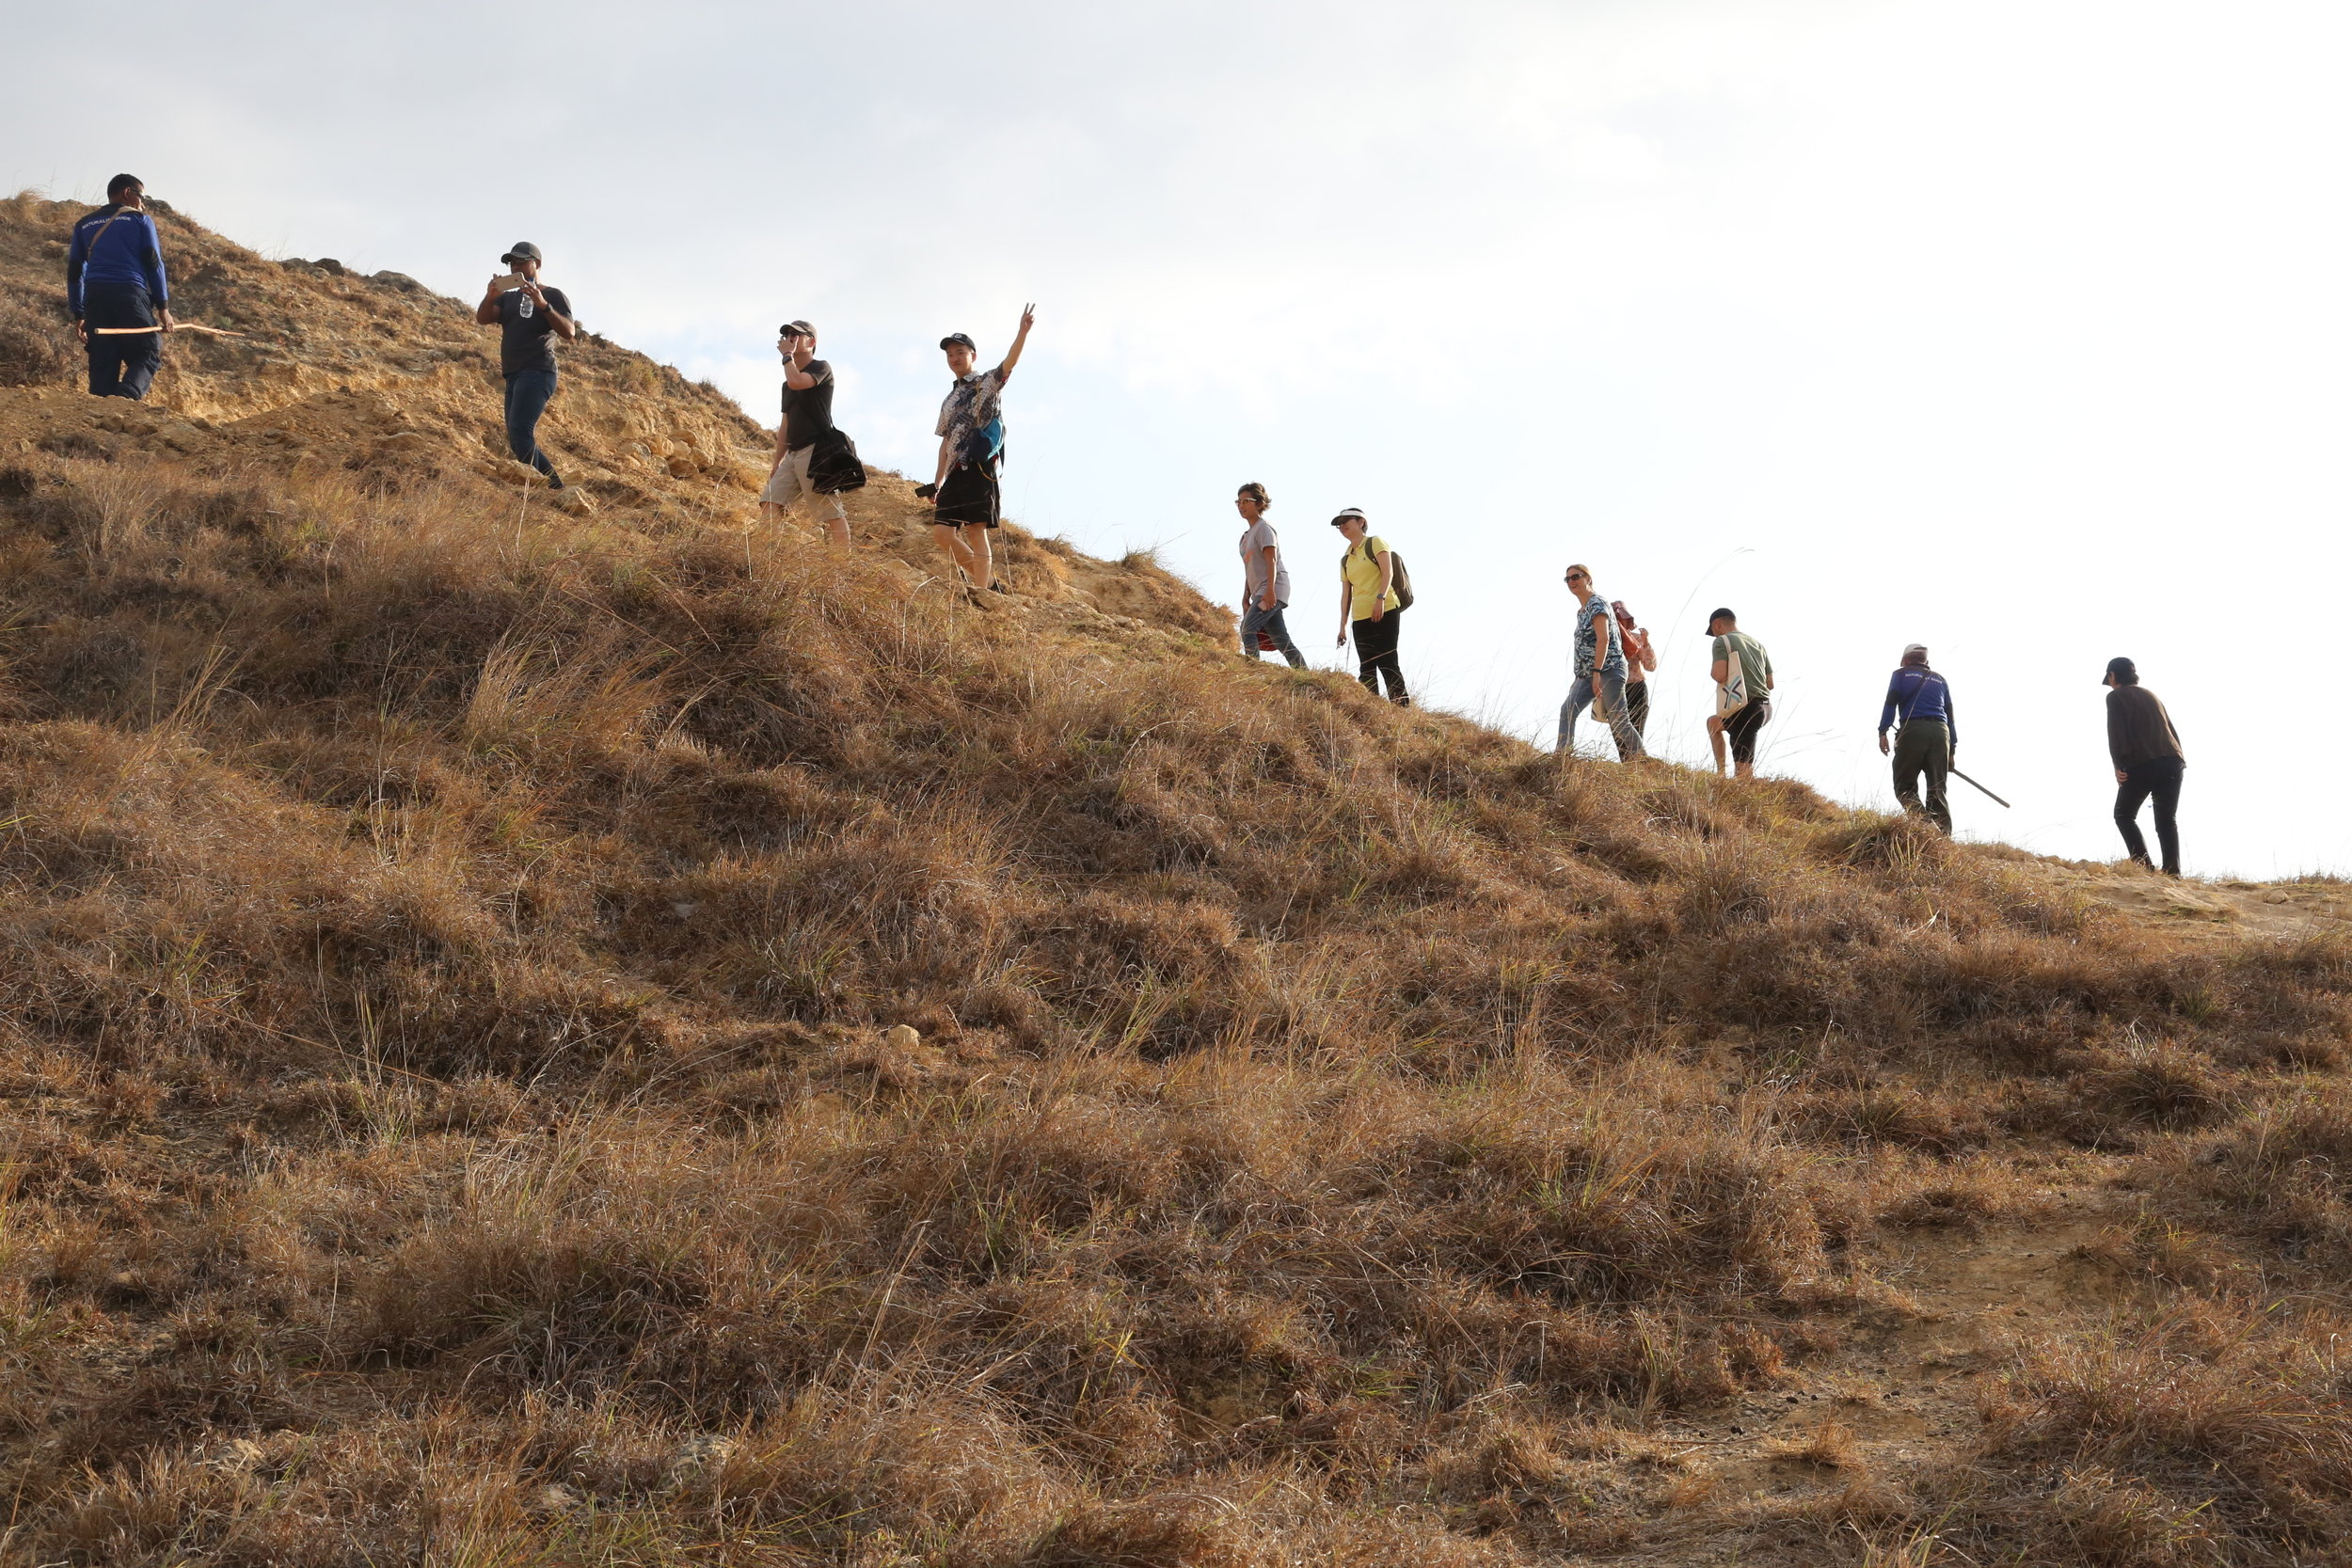 Fellows on Komodo island in Indonesia. Photo: The Equity Initiative